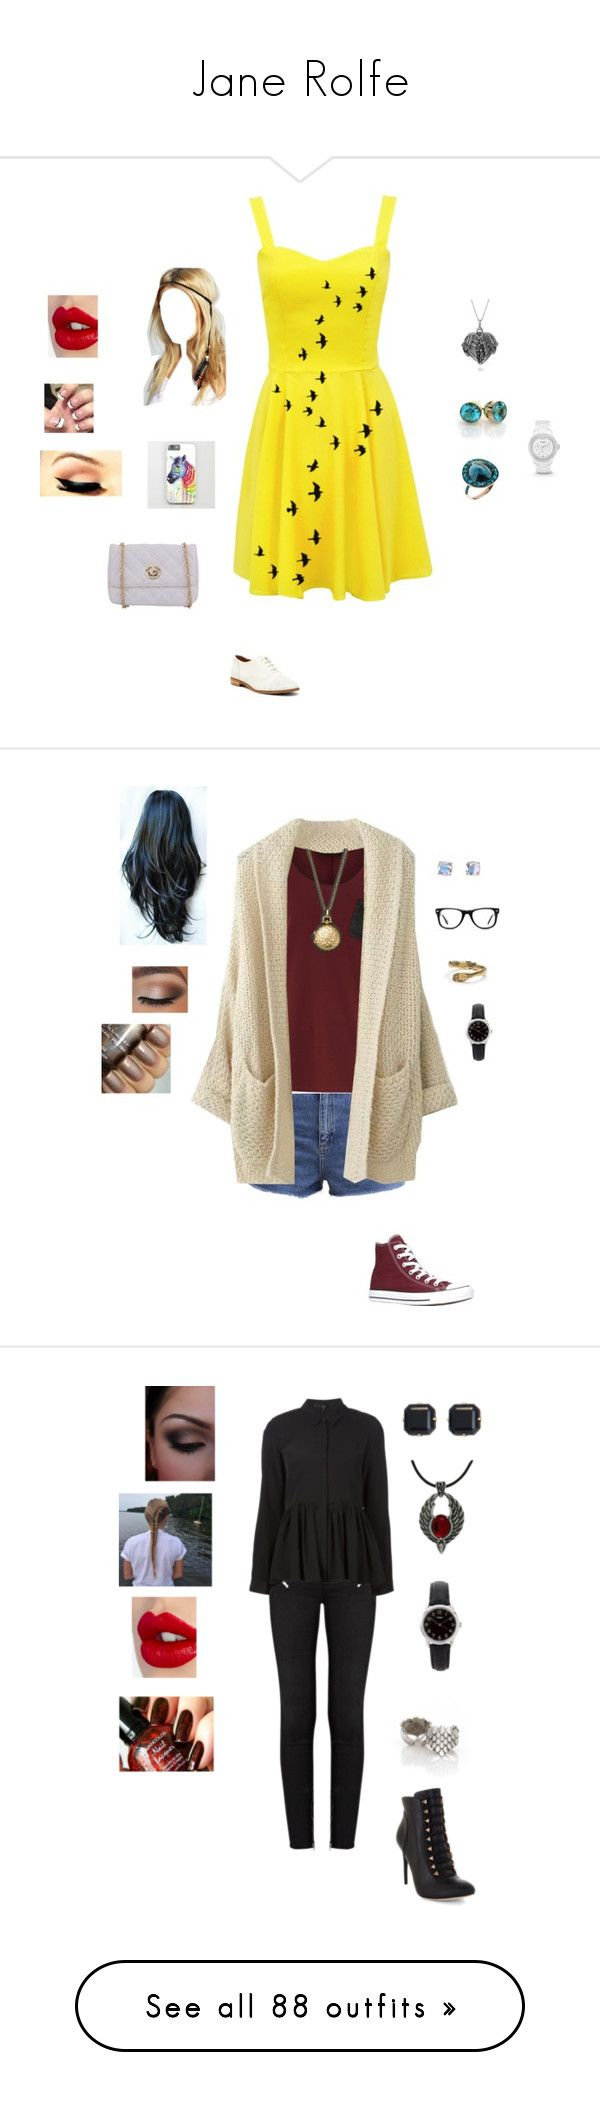 """""""Jane Rolfe"""" by brelea-1 ❤ liked on Polyvore featuring Annoushka, Enzo Angiolini, Boohoo, FOSSIL, Charlotte Tilbury, Journee Collection, Free People, Dorothy Perkins, Kate Spade and Muse"""